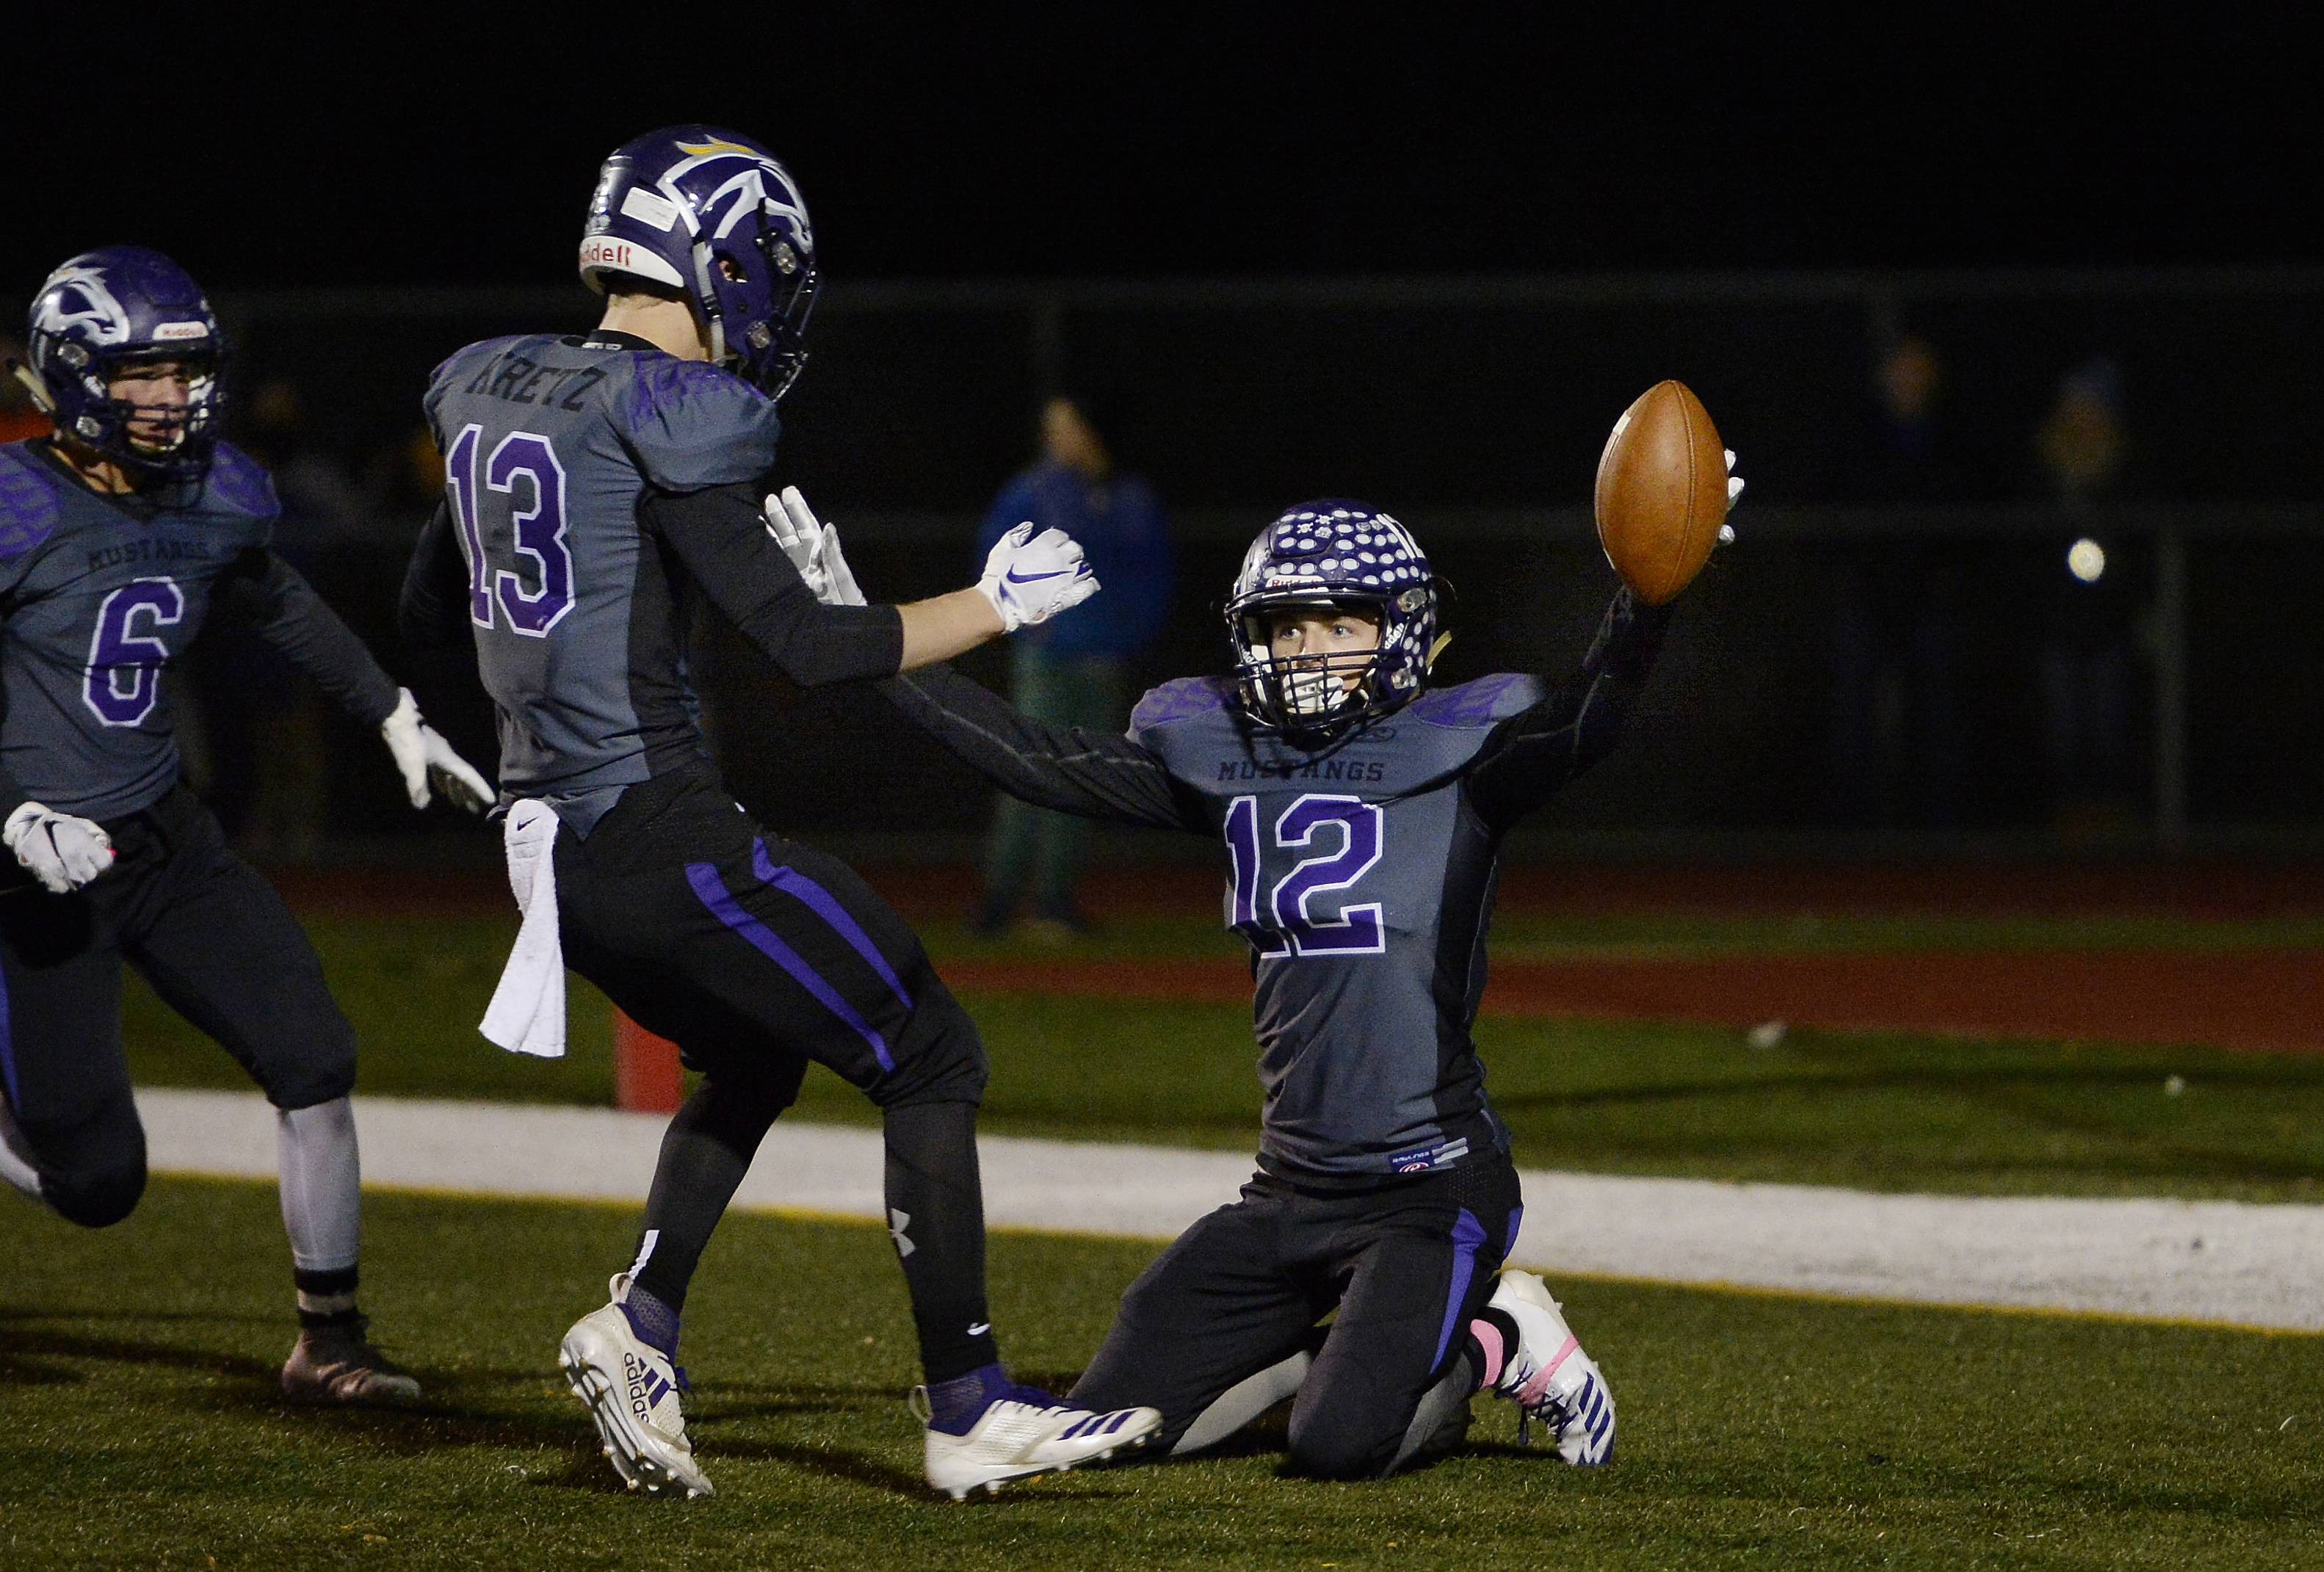 Rolling Meadows' Charlie Svoboda celebrates his fourth-quarter touchdown against Hersey last week. Meadows will host Alton in a first round Class 7A playoff game while Hersey entertains Lincoln-Way Central.